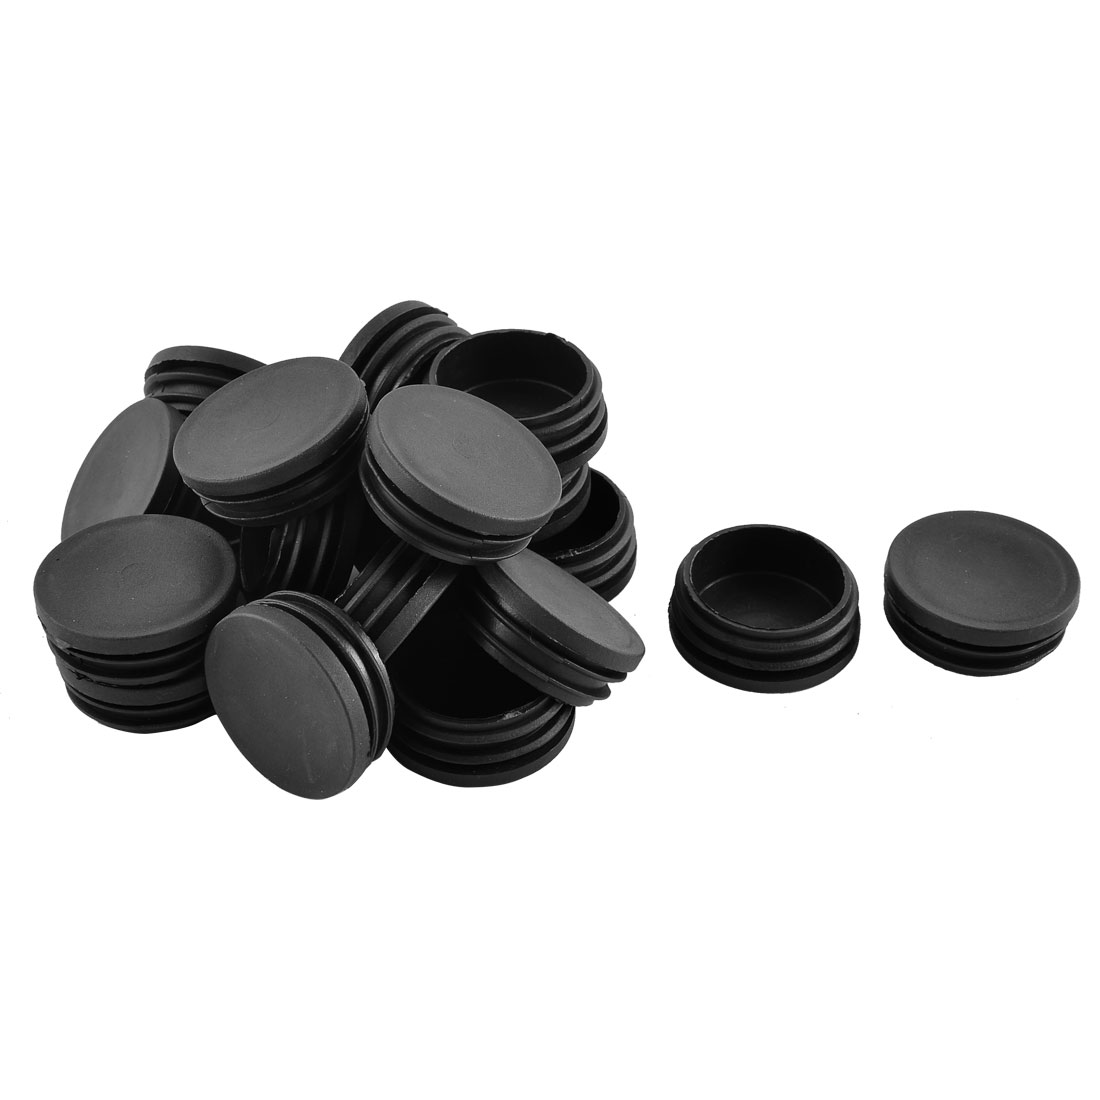 Home Office Plastic Round Shaped Furniture Table Chair Leg Feet Tube Insert Black 20 Pcs